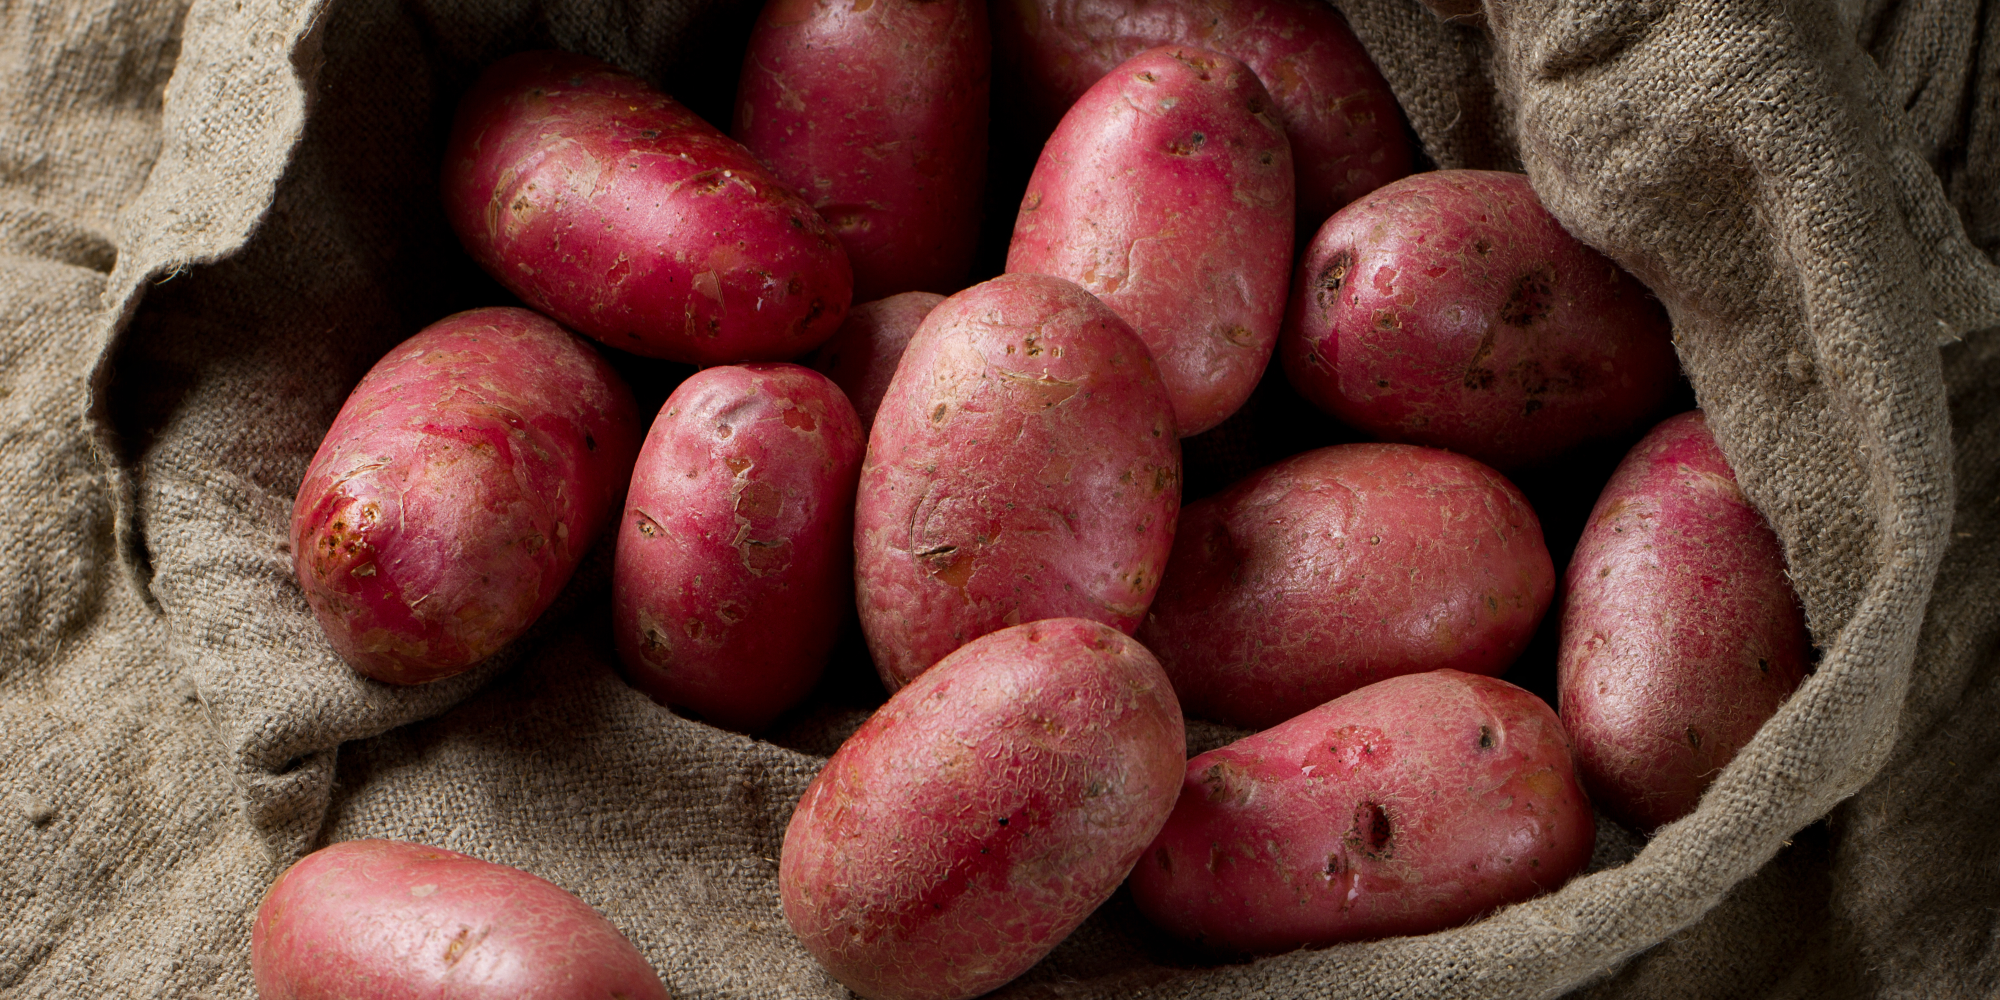 Red potatoes boiled